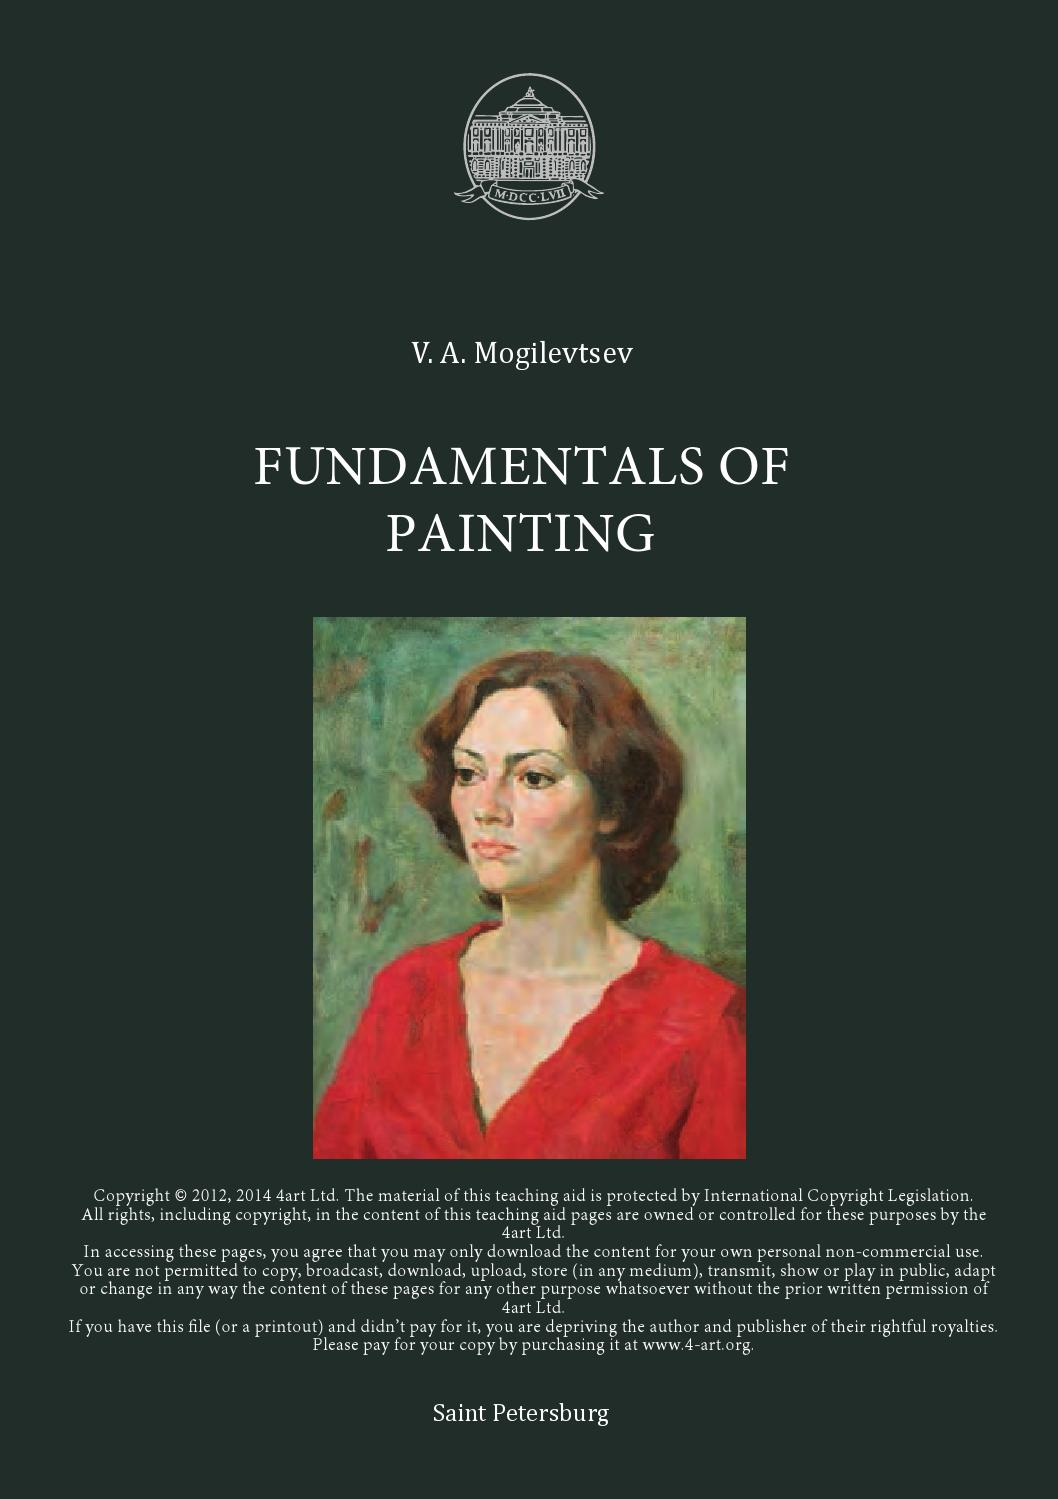 Fundamentals of painting english pdf by 4 art ltd issuu